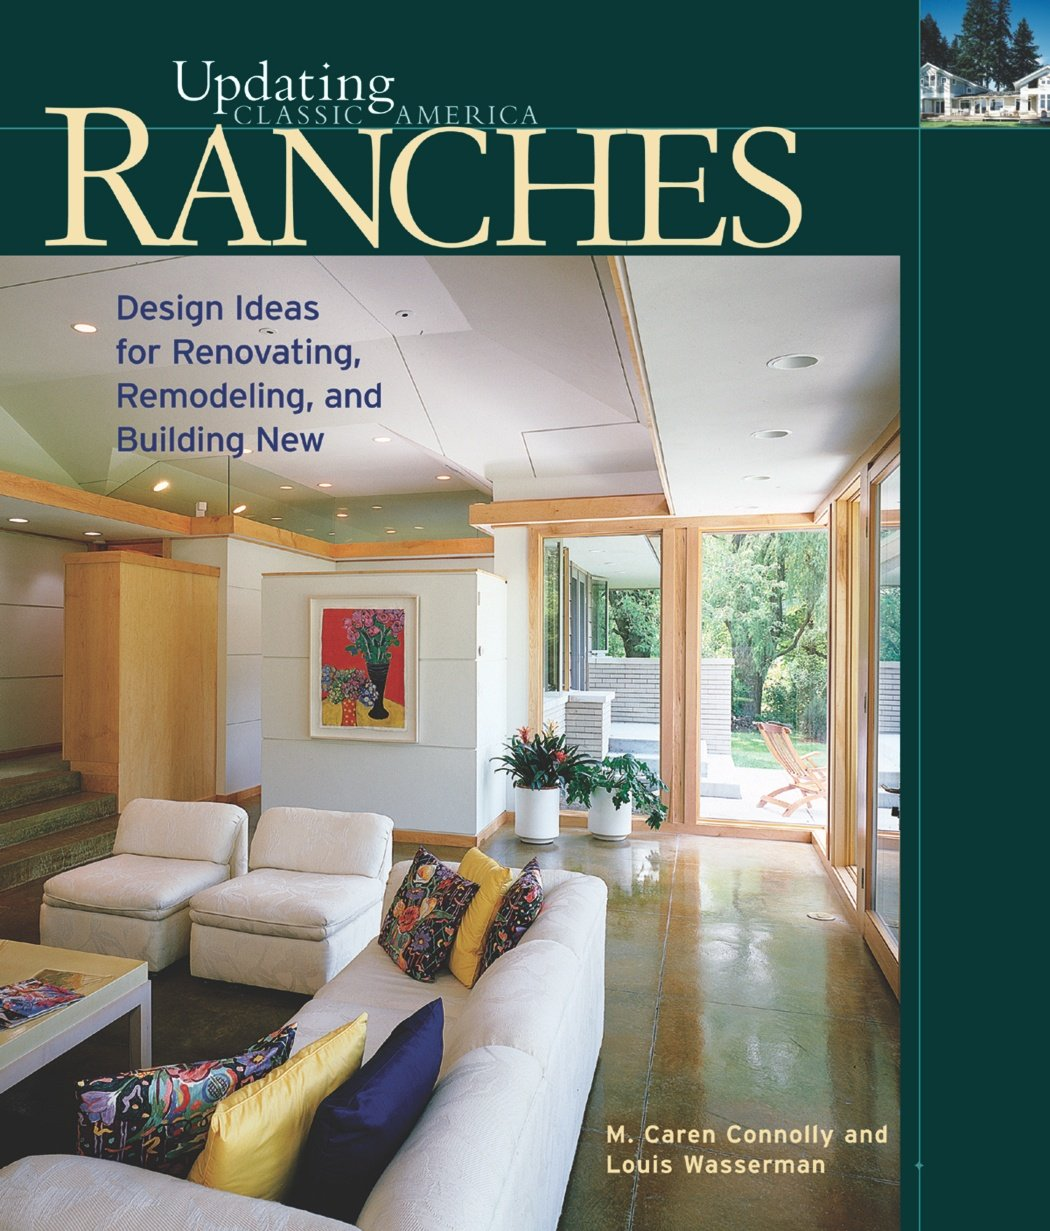 Read Online Ranches: Design Ideas for Renovating, Remodeling, and Building New (Updating Classic America) ebook